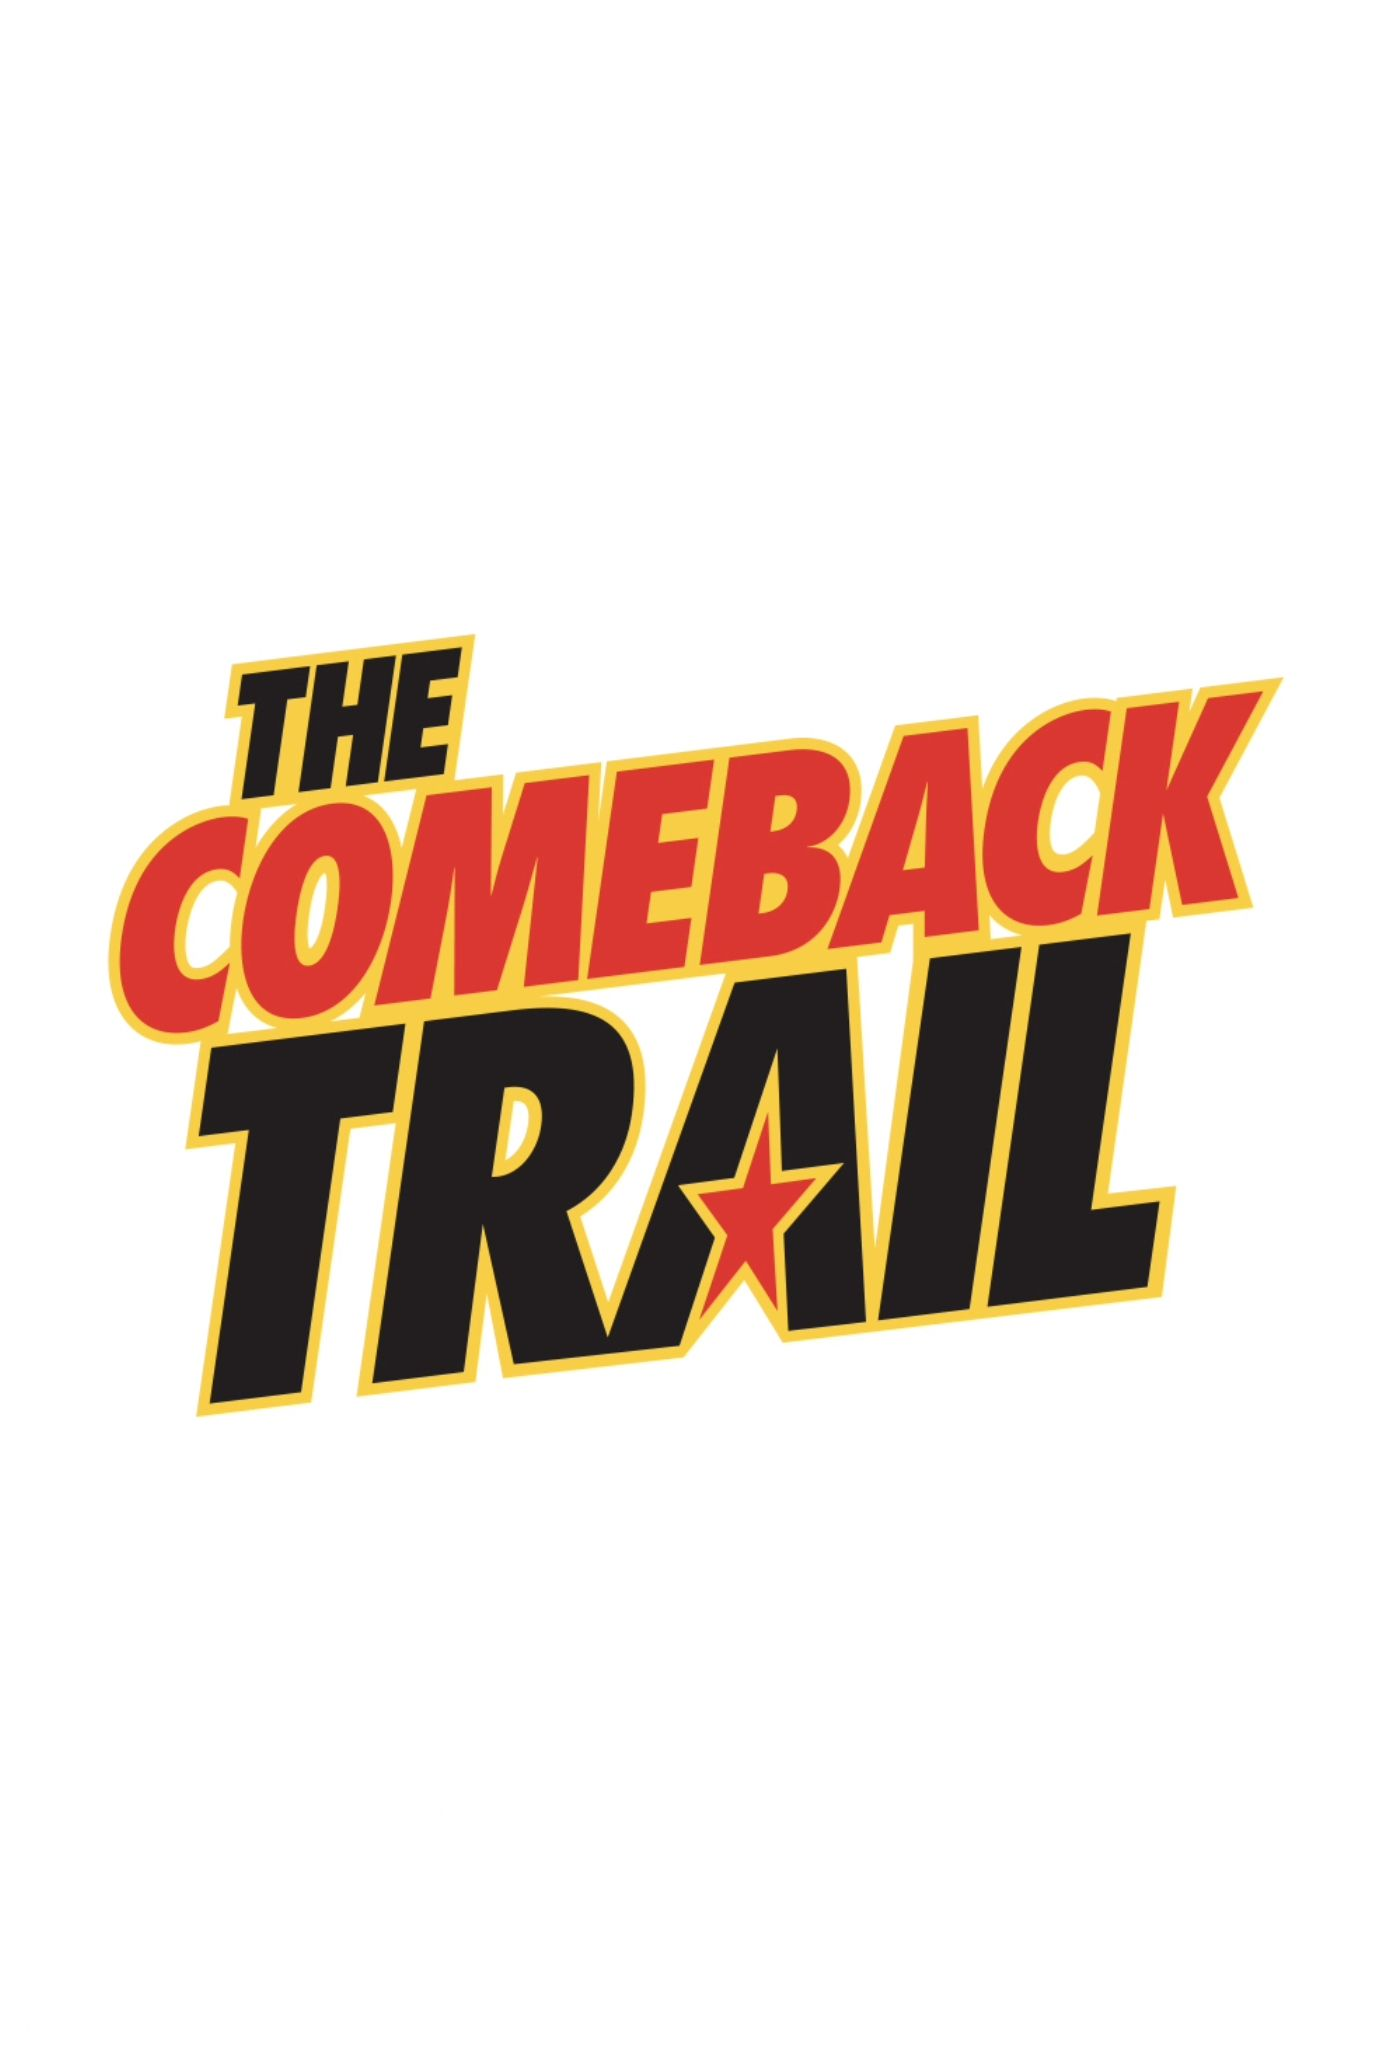 The Comeback Trail 2020 In 2020 Best Movies On Amazon Good Movies On Netflix Full Movies Online Free